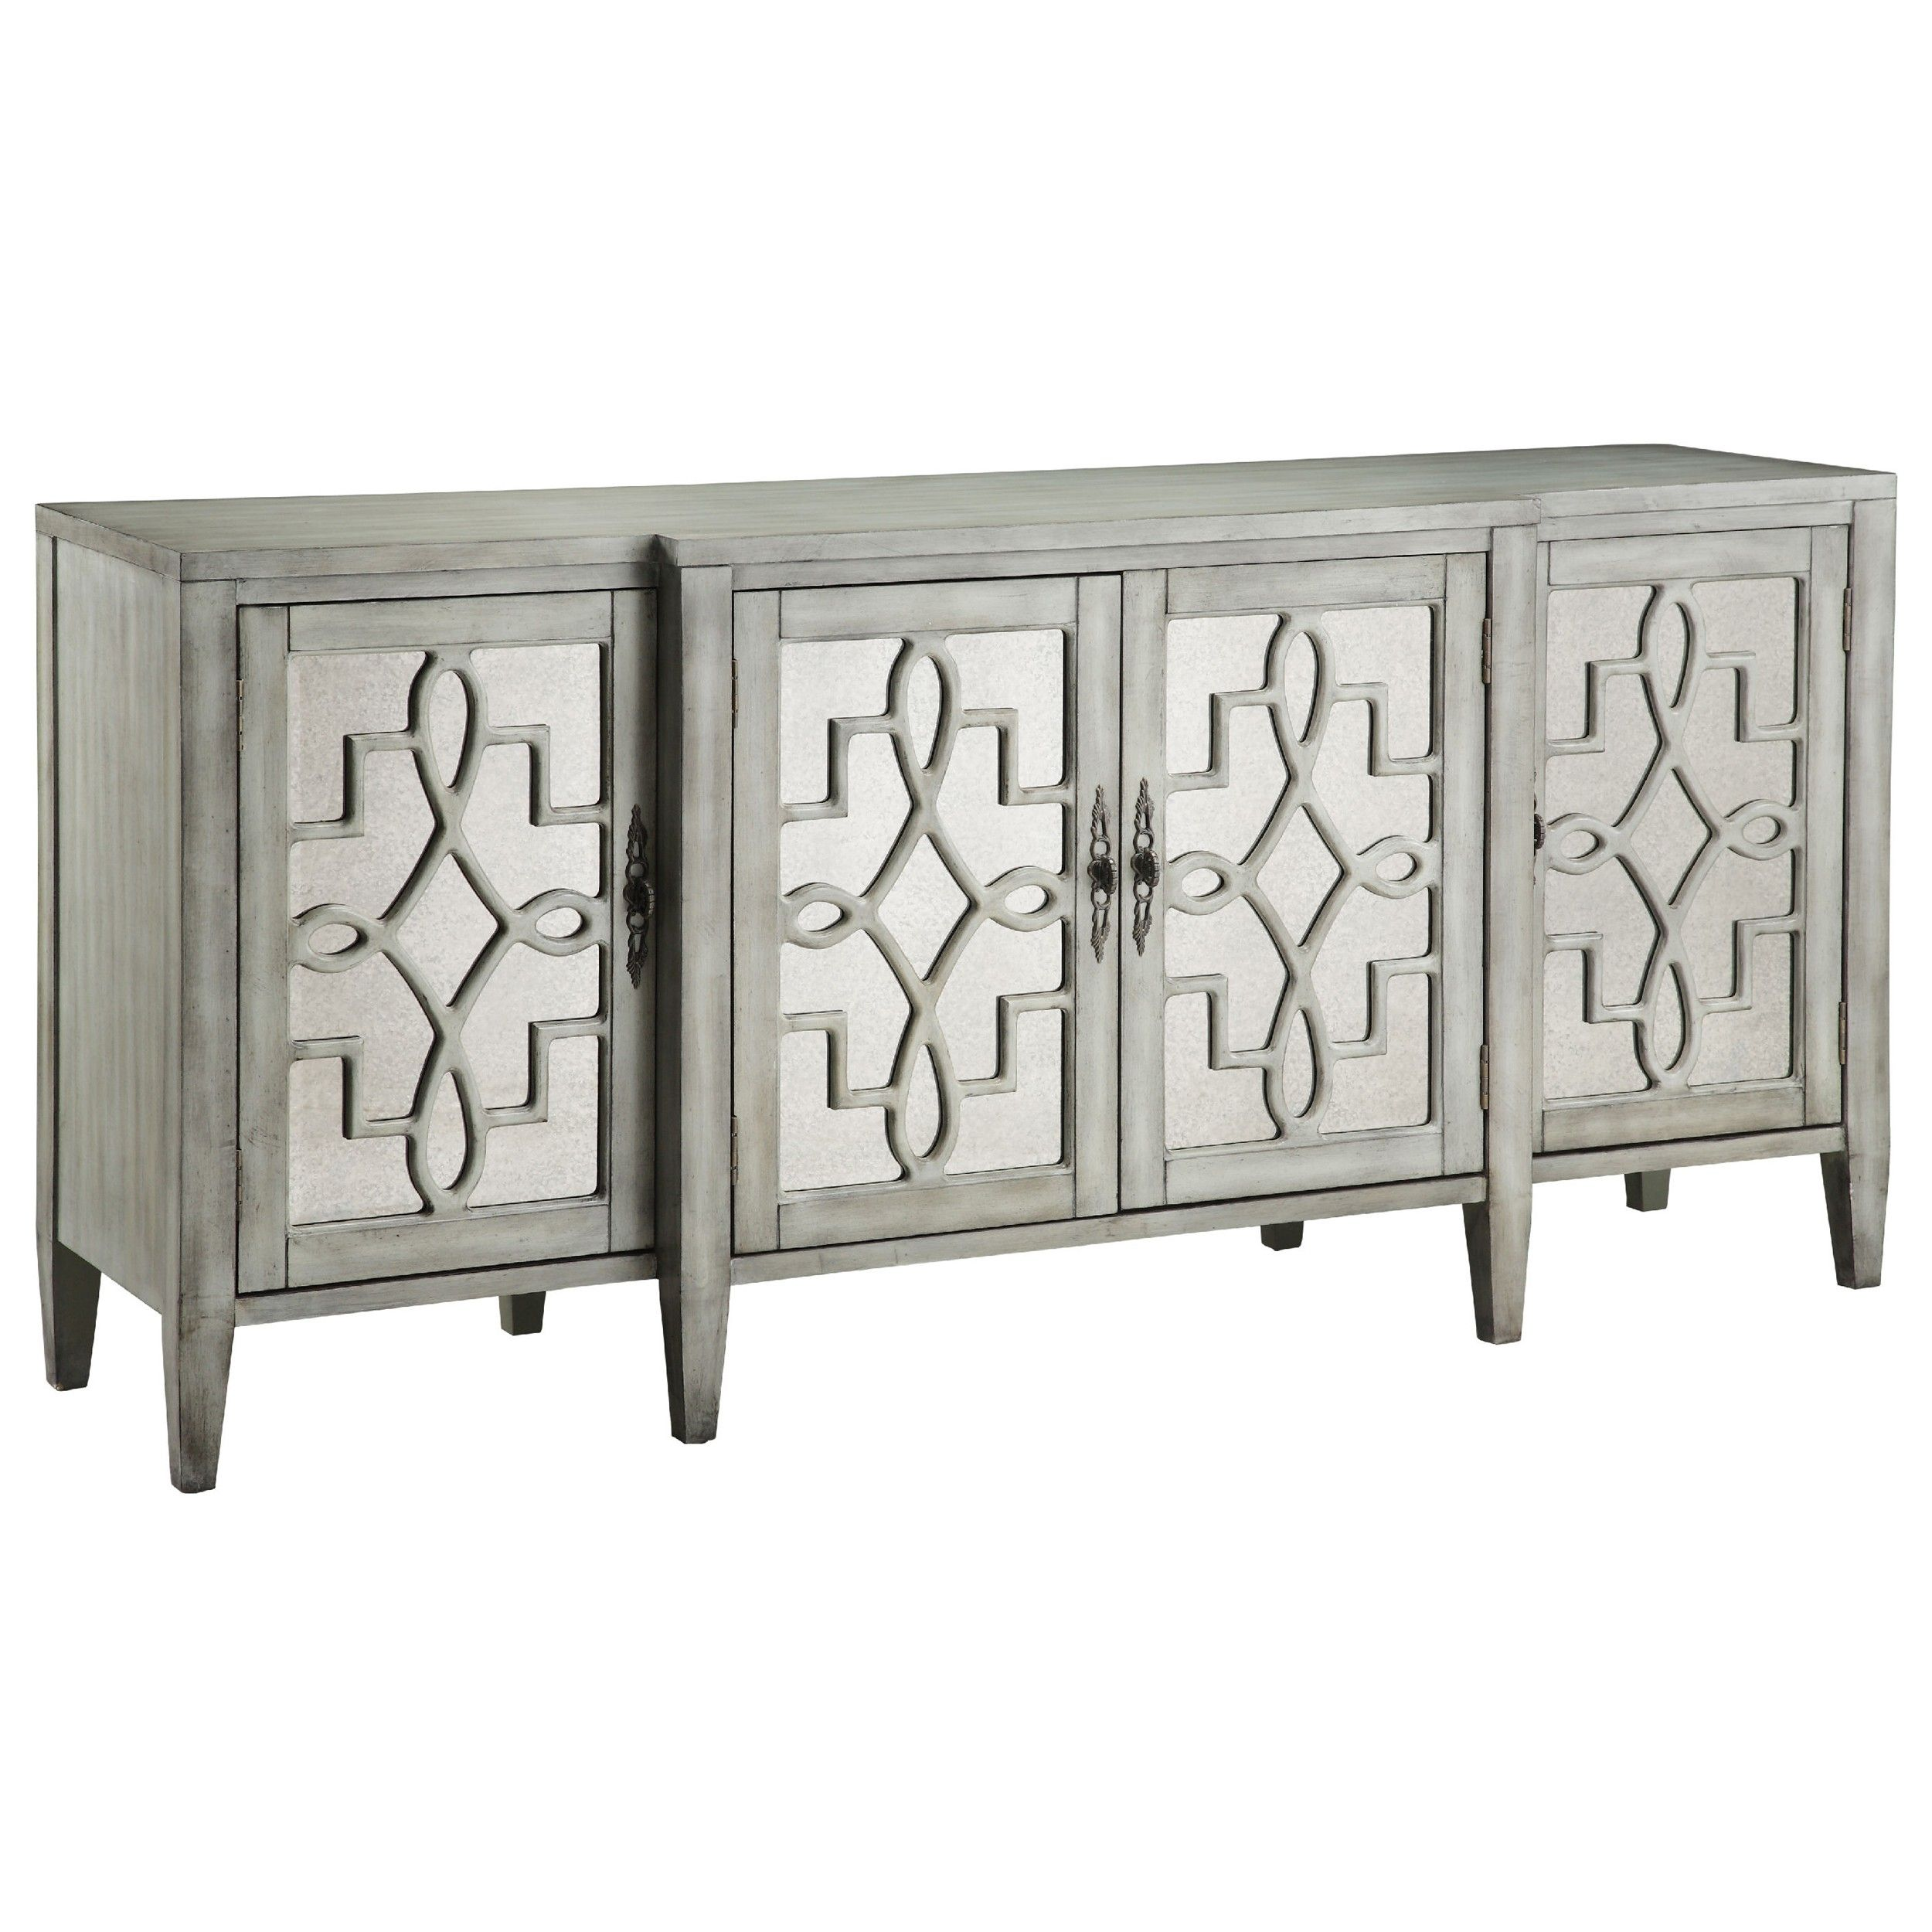 Credenza 4 Door Mirror Facing Grey Mirrored Credenza Mirrored Sideboard Stein World